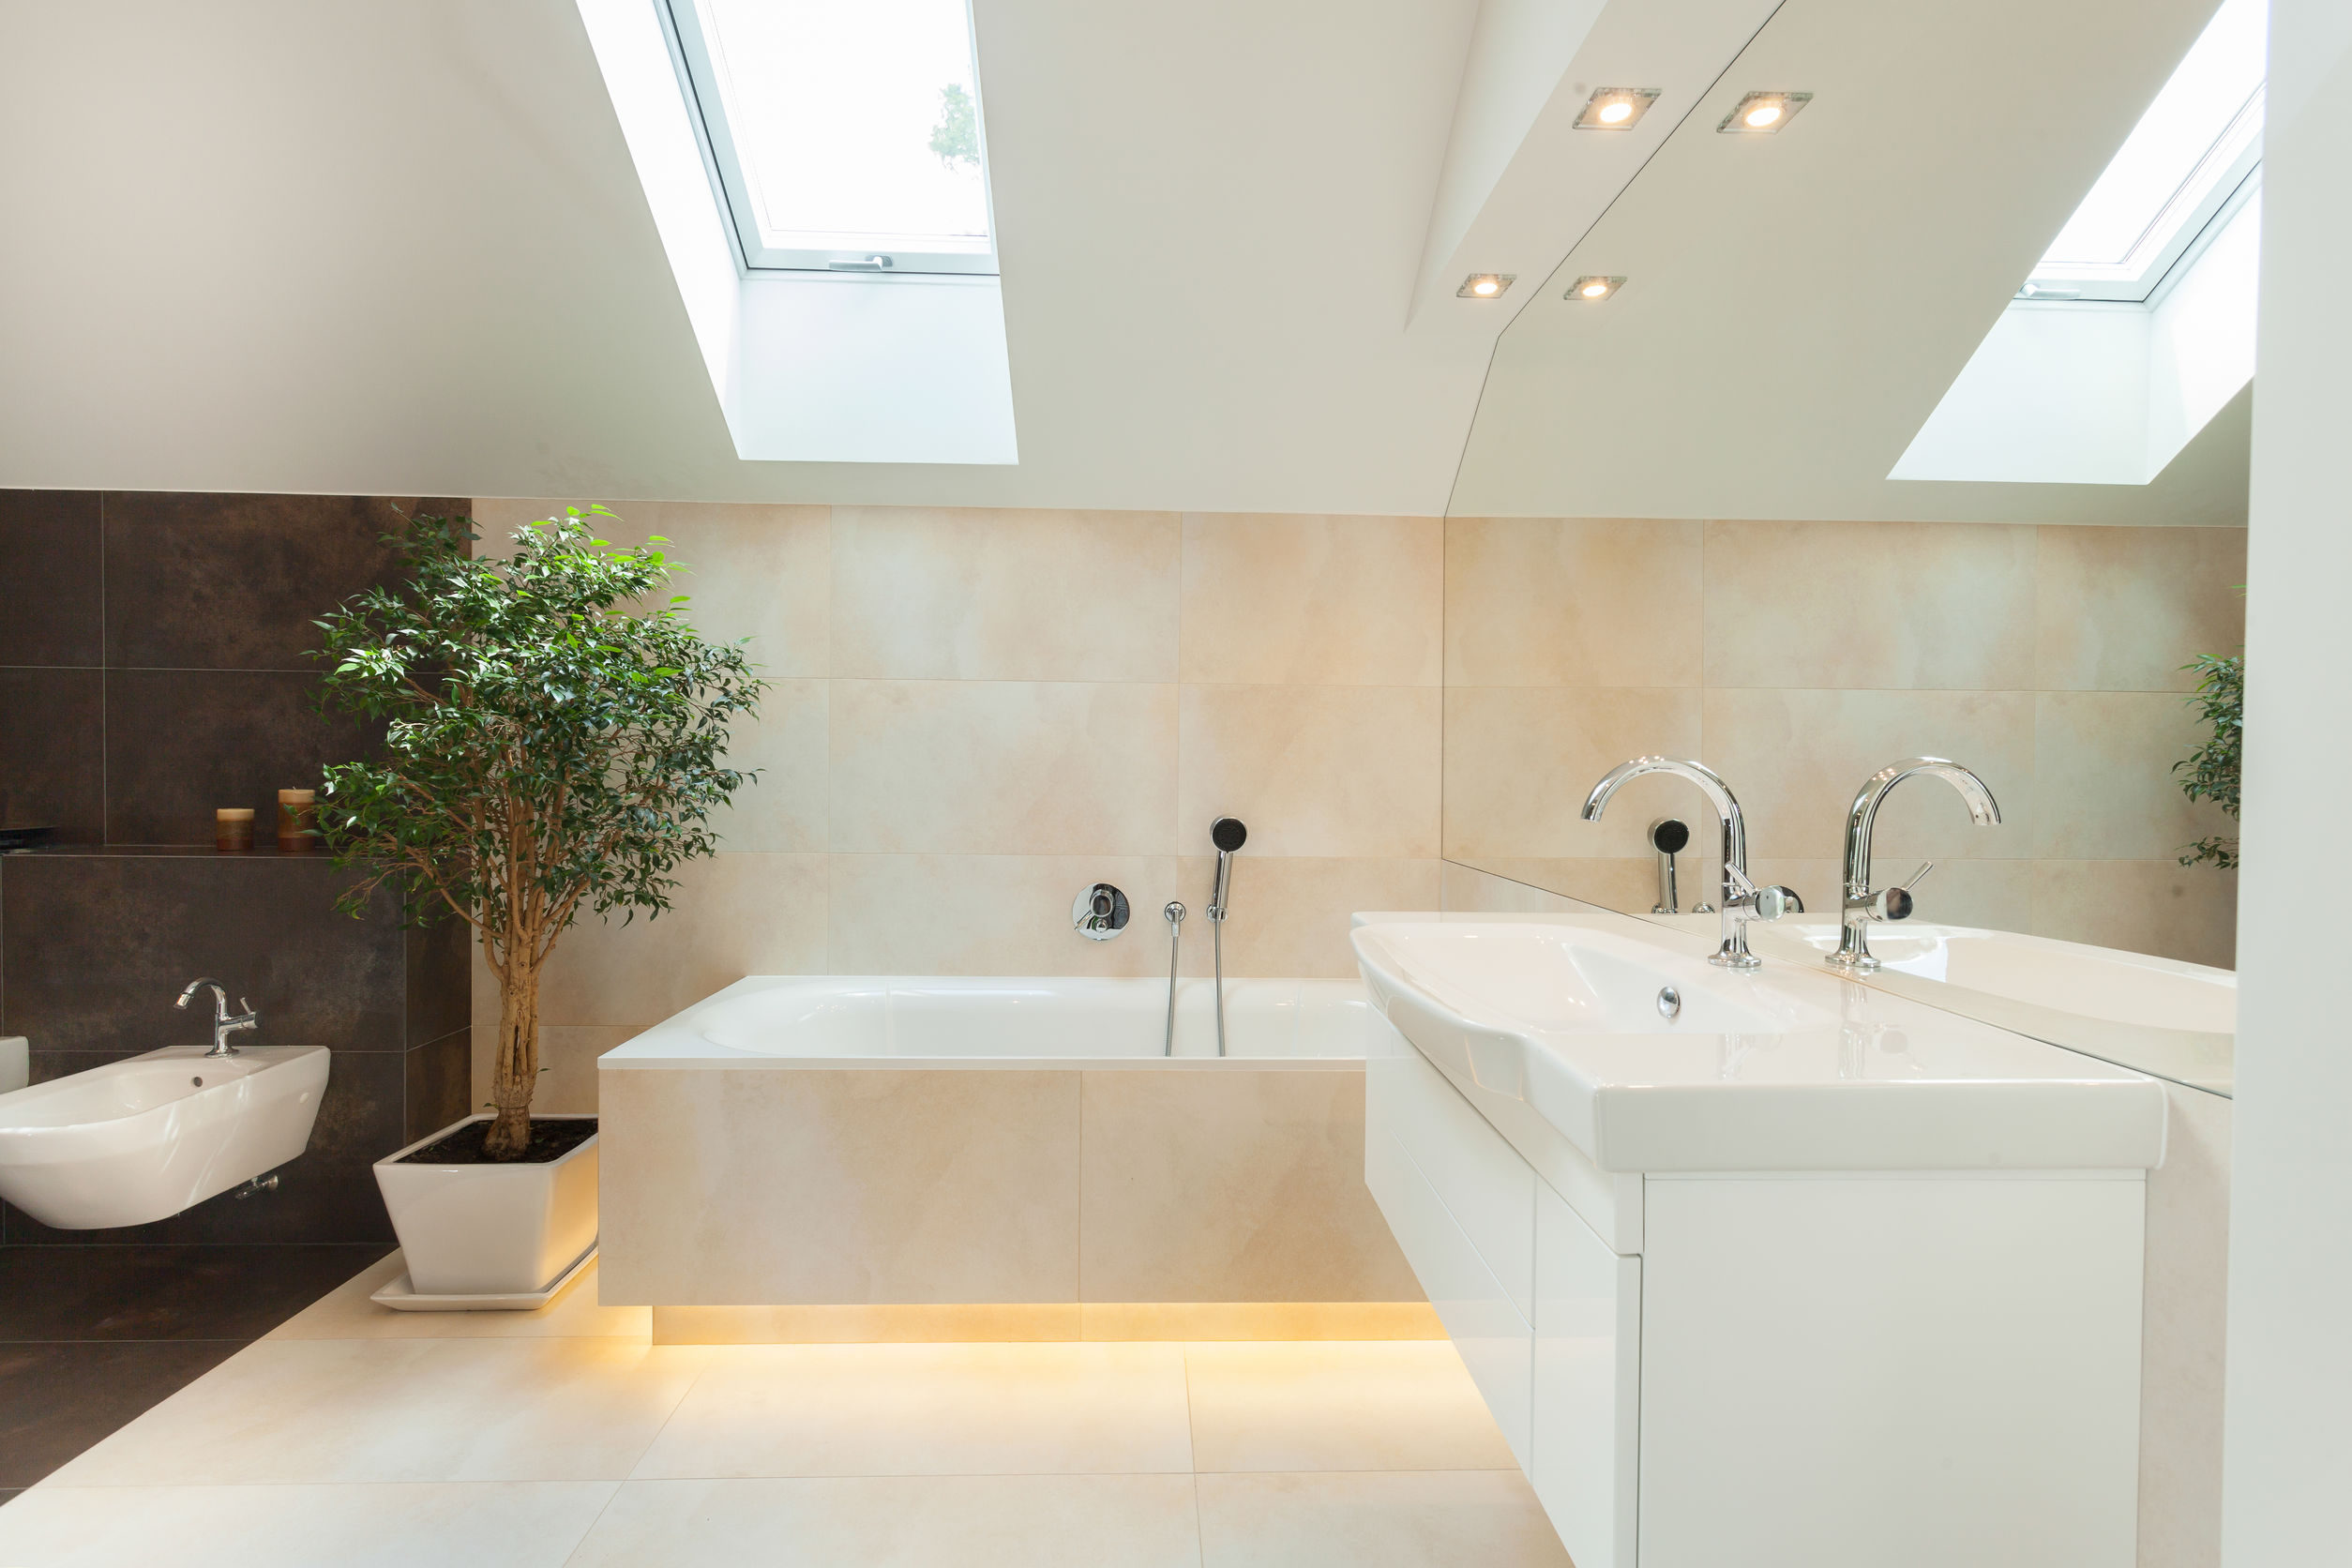 Carrying Out Complete Bathroom Renovations With Great Ease